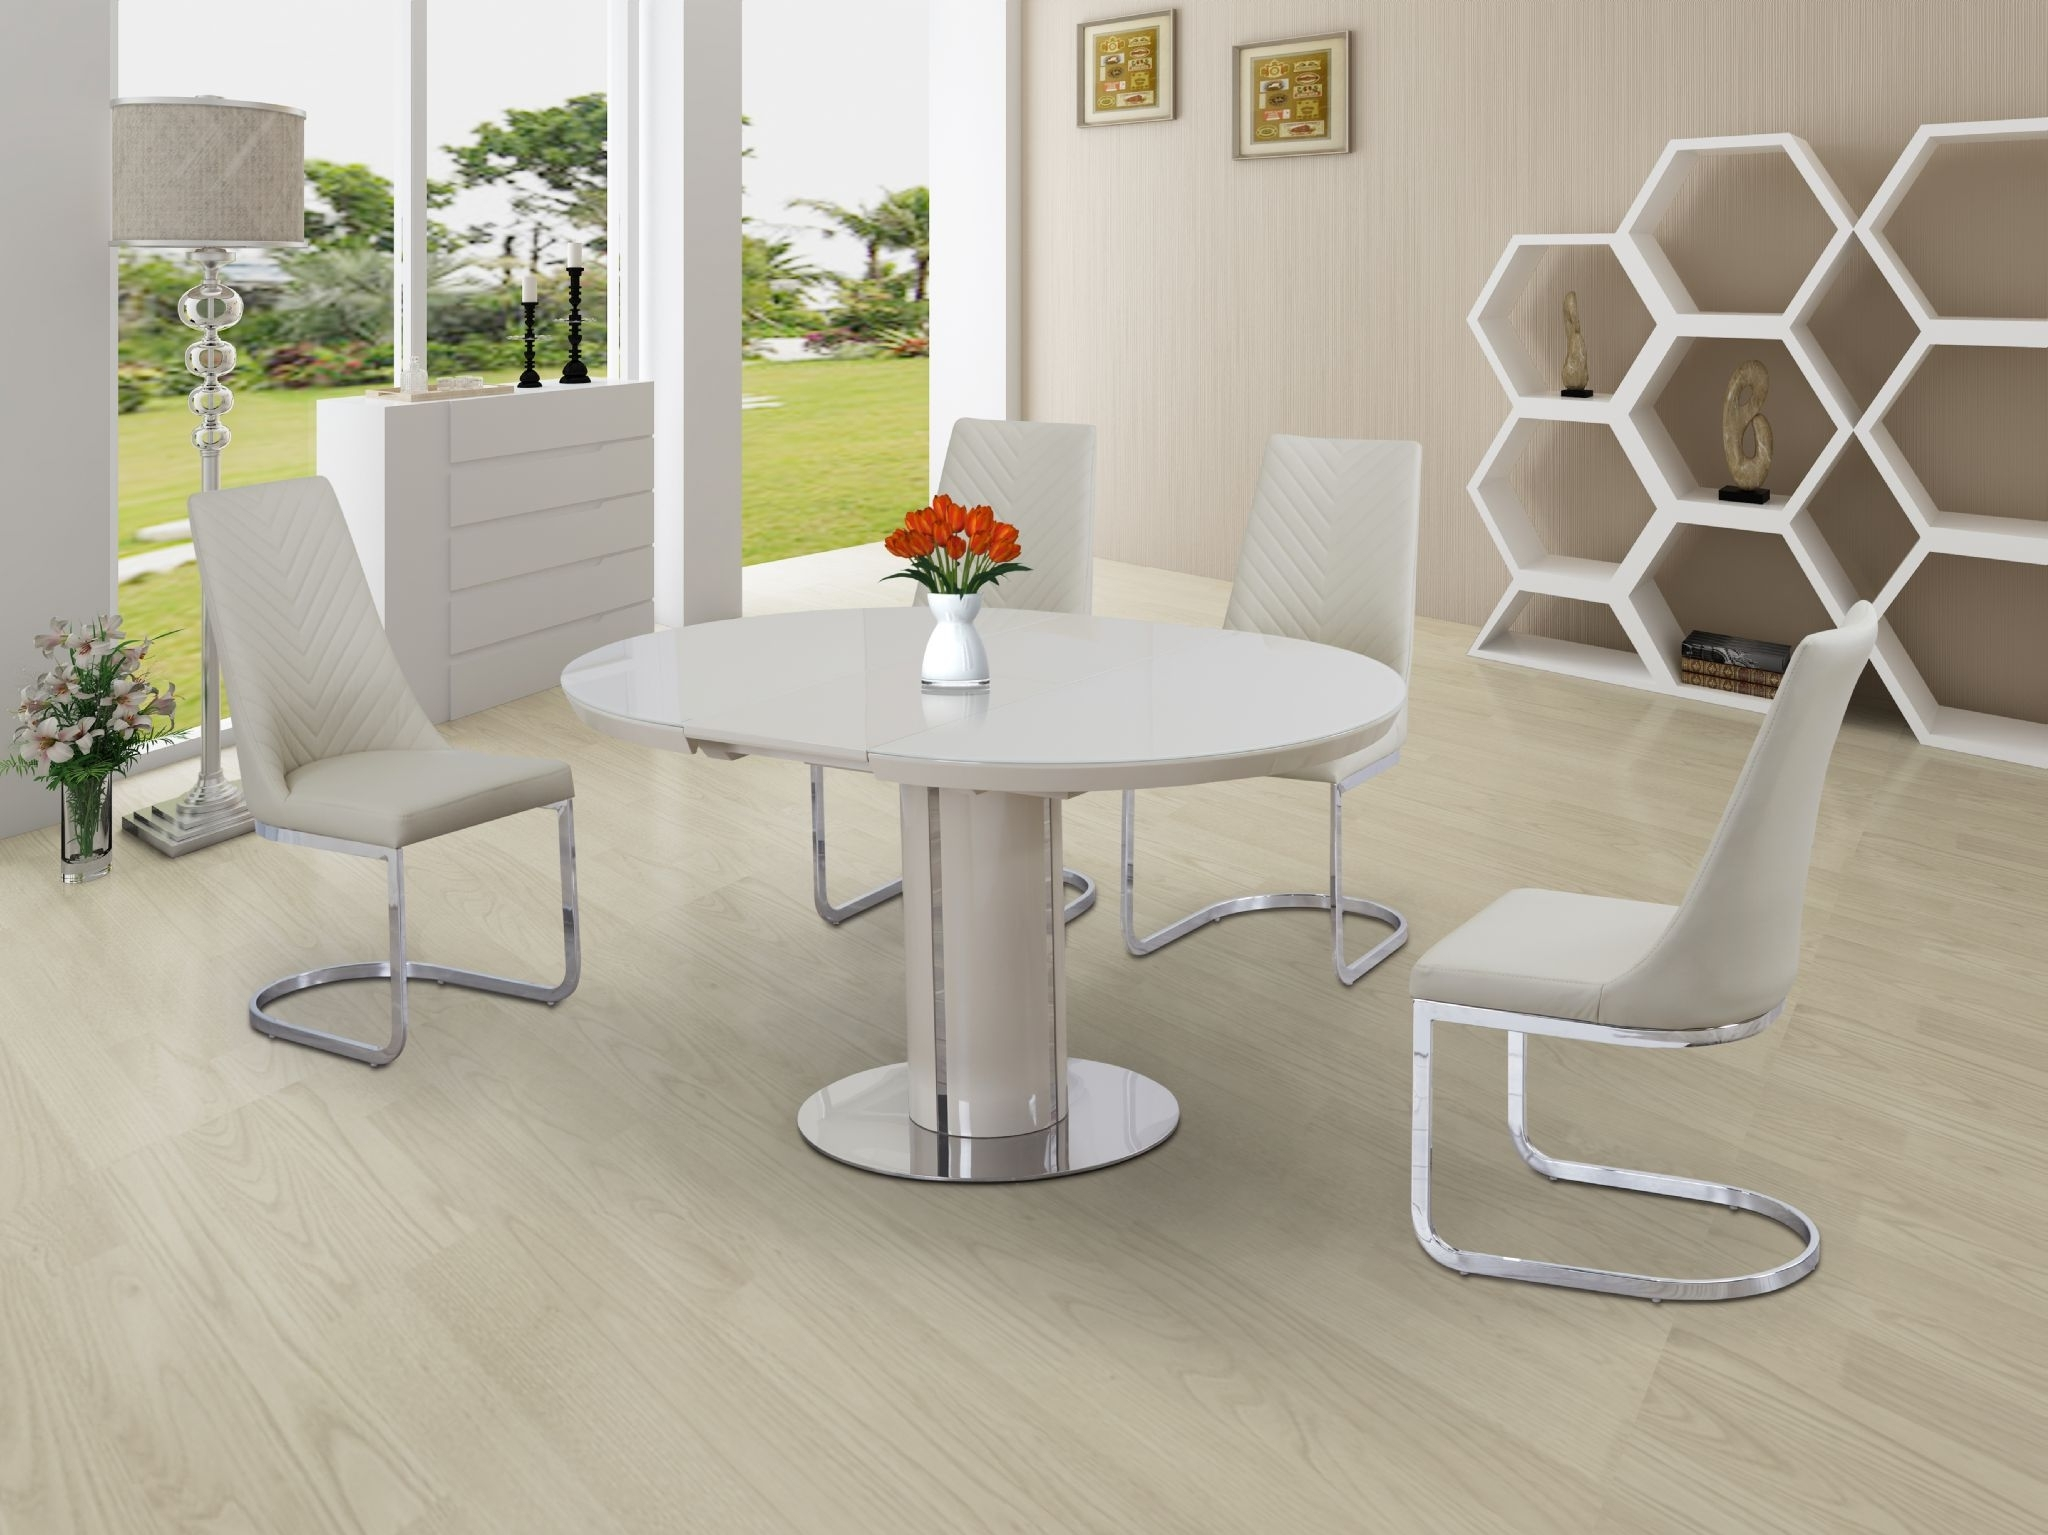 Buy Cream Small Round Extendable Dining Table Today Inside Favorite White Gloss Round Extending Dining Tables (Gallery 6 of 25)